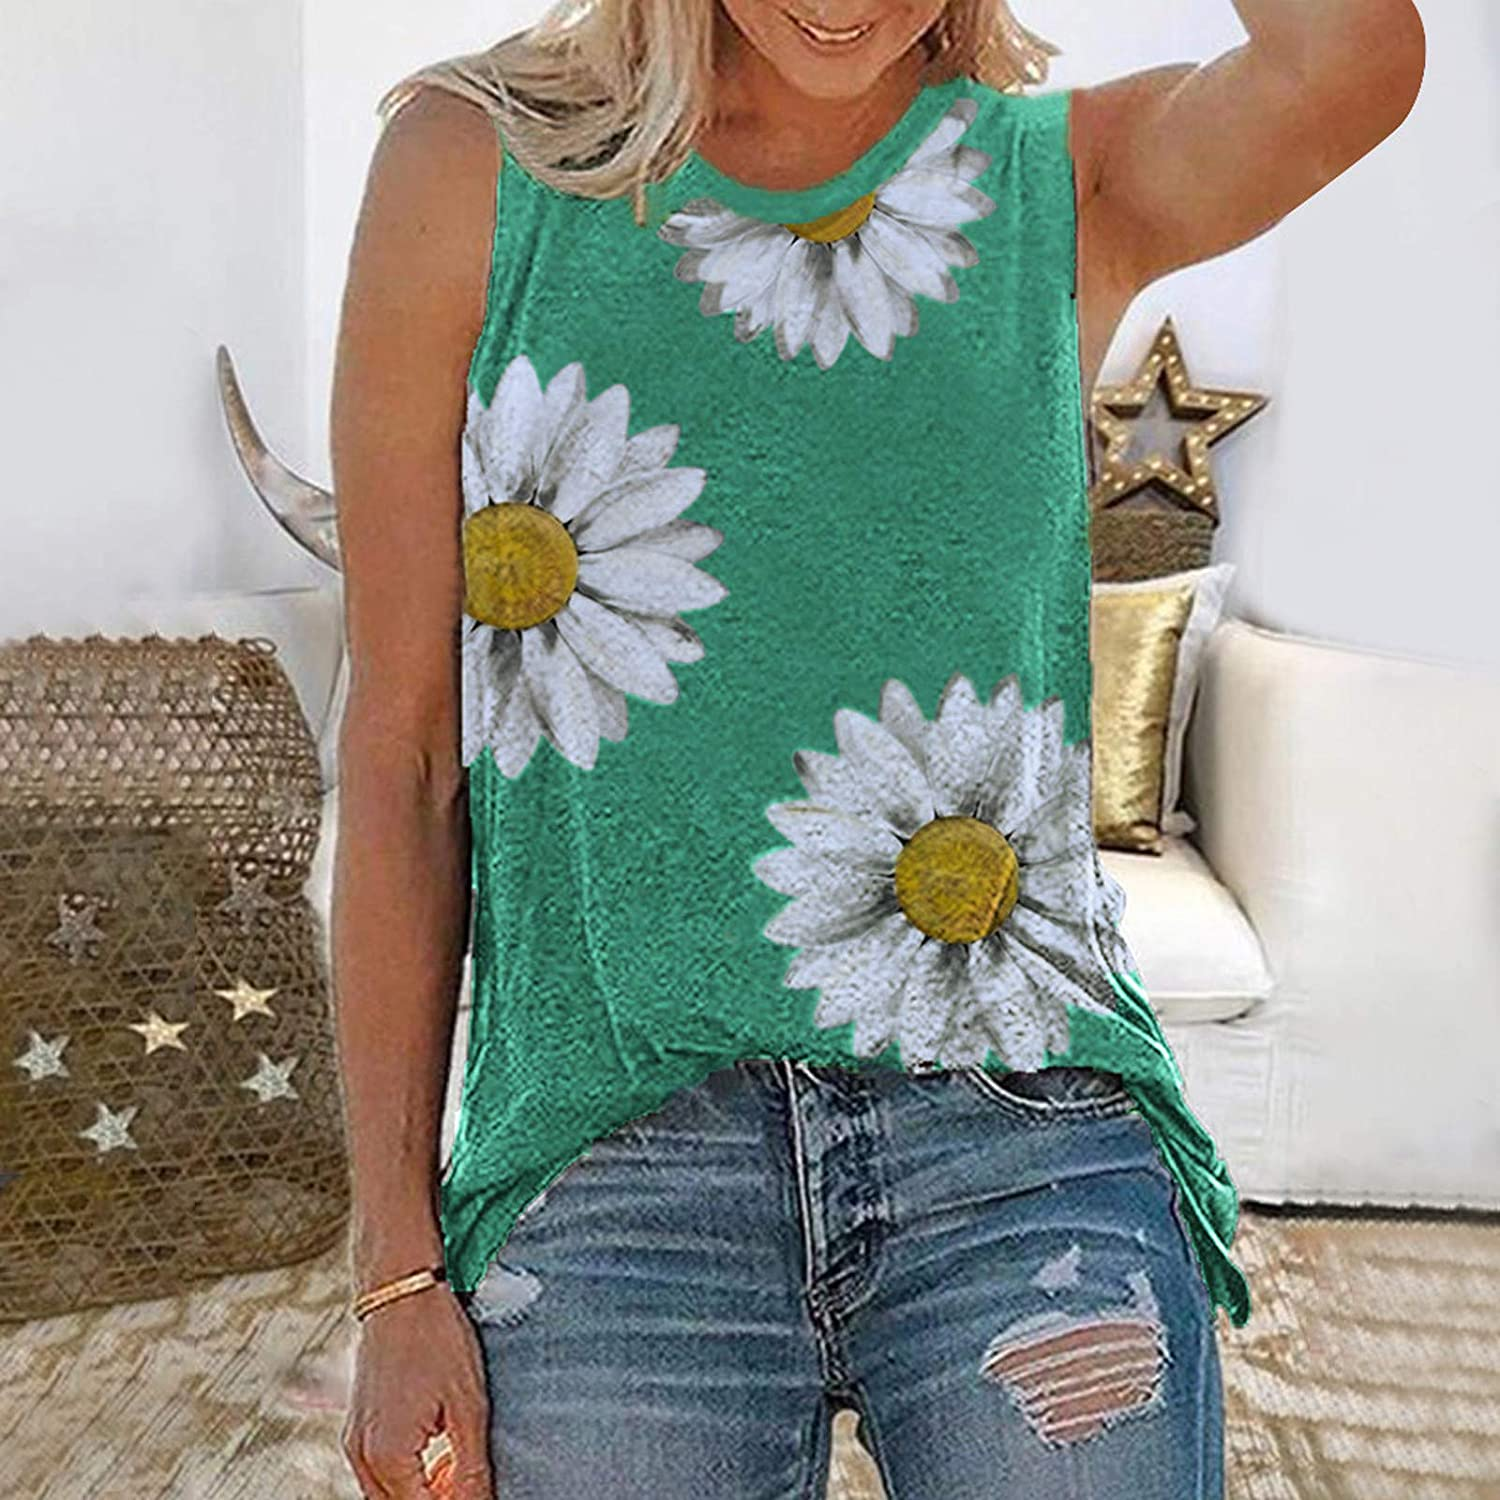 Tops for Women Casual Summer,Women's Sunflower Graphic Tank Tops Summer Casual Basic Sleeveless Shirts Funny Graphic